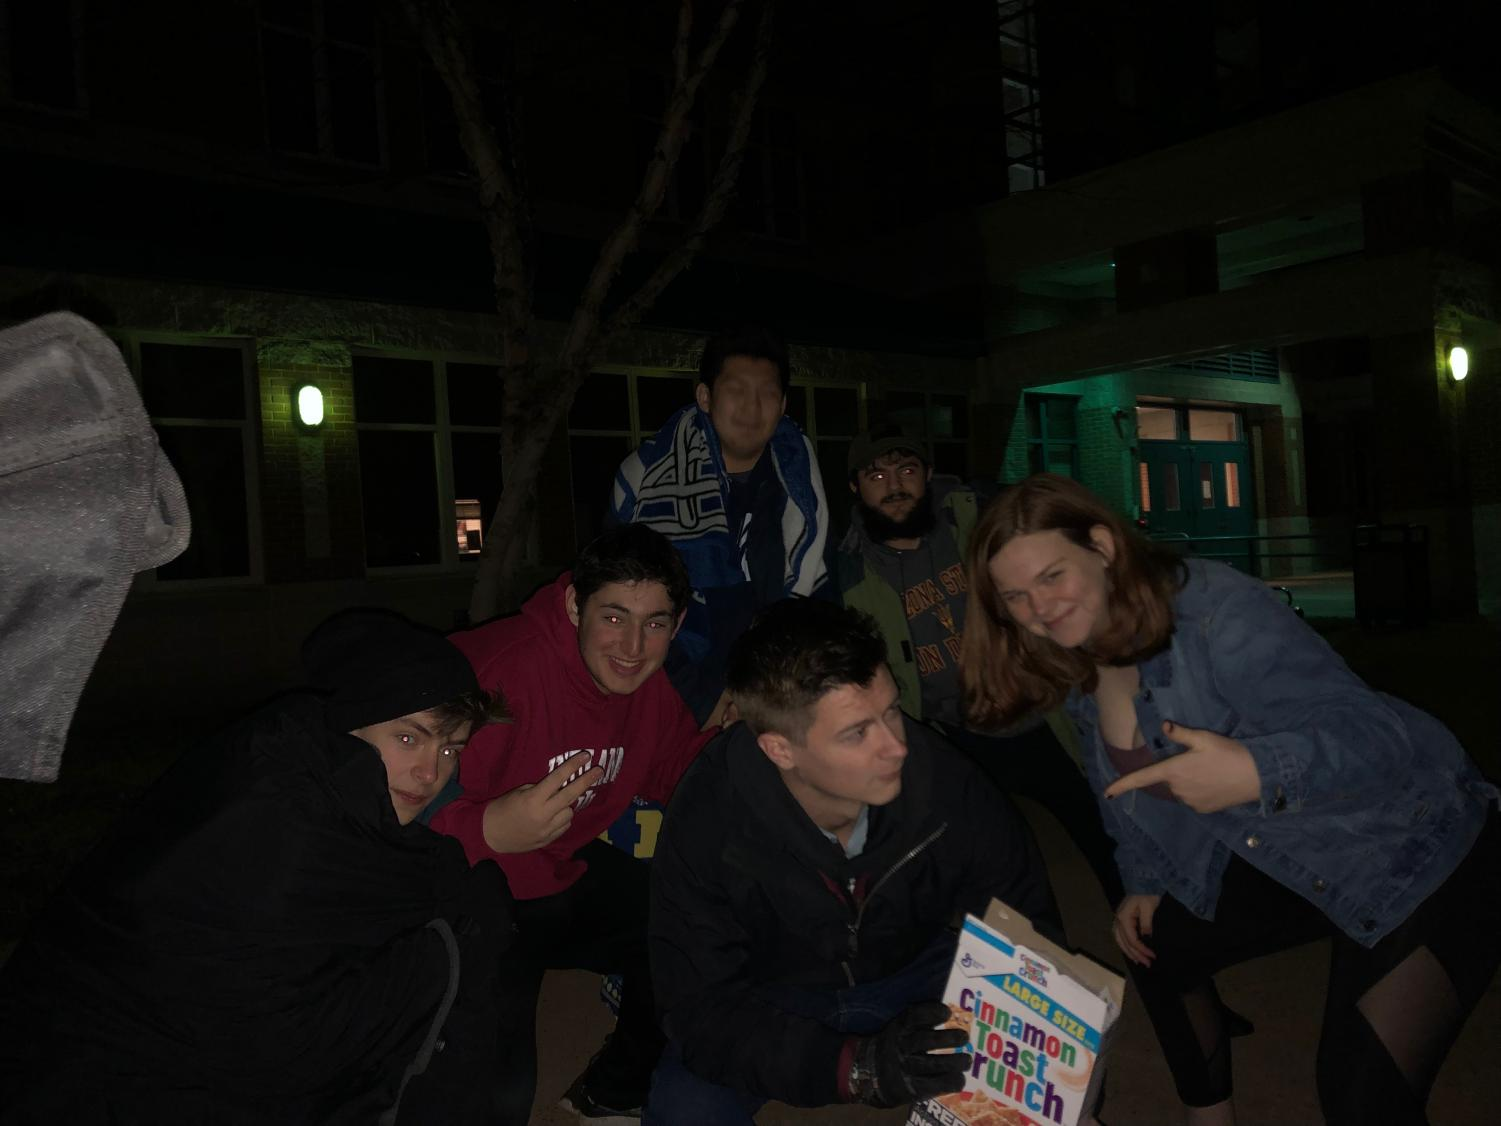 Students take part in a quick photoshoot while spending the night at Whitman. Around 50 students spent the night at Whitman in the hopes of receiving one of the four parking permits resold Wednesday morning.